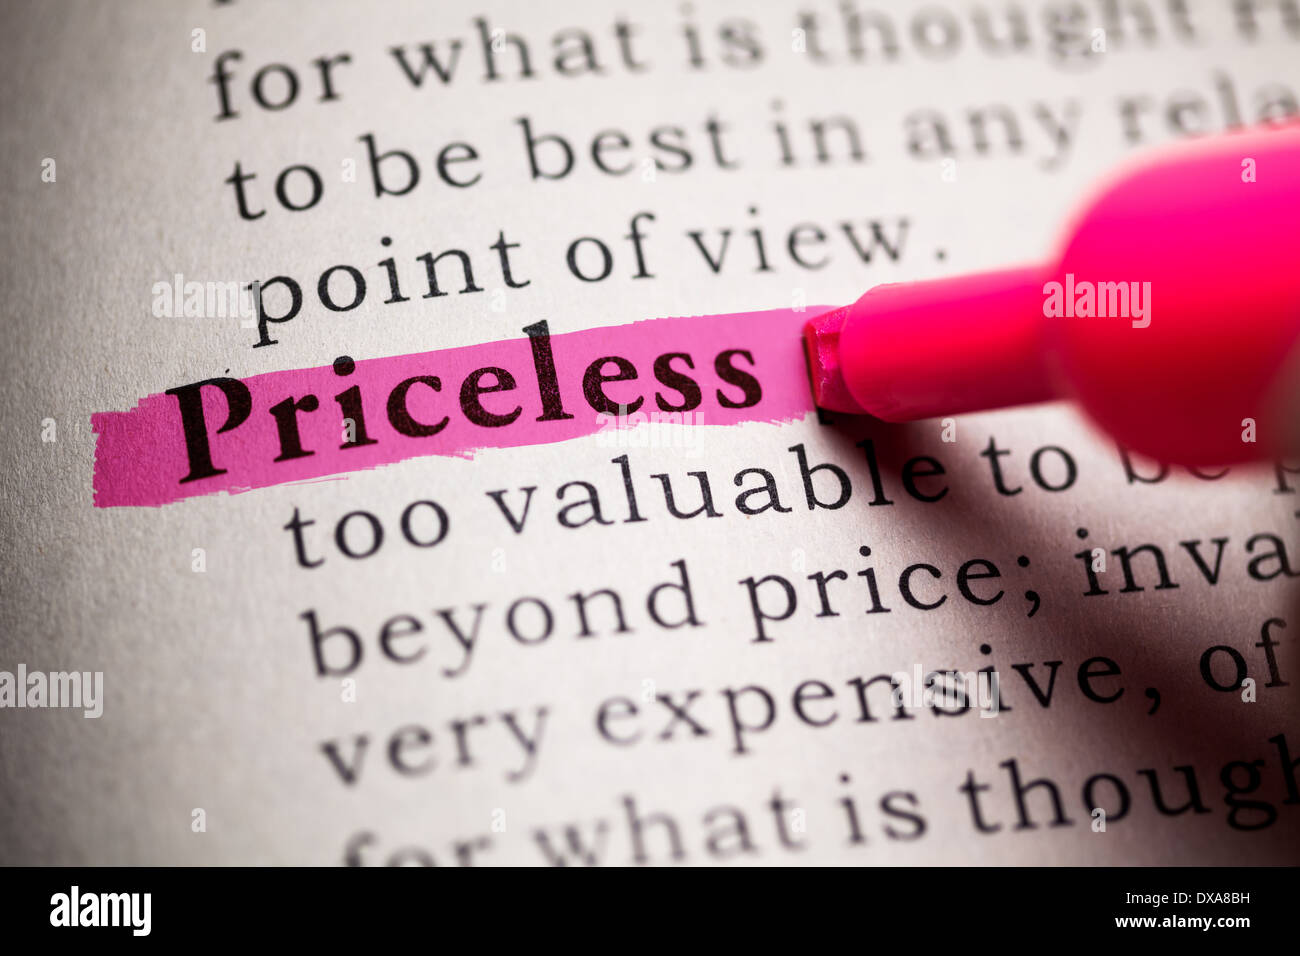 Fake Dictionary, definition of the word Priceless. - Stock Image